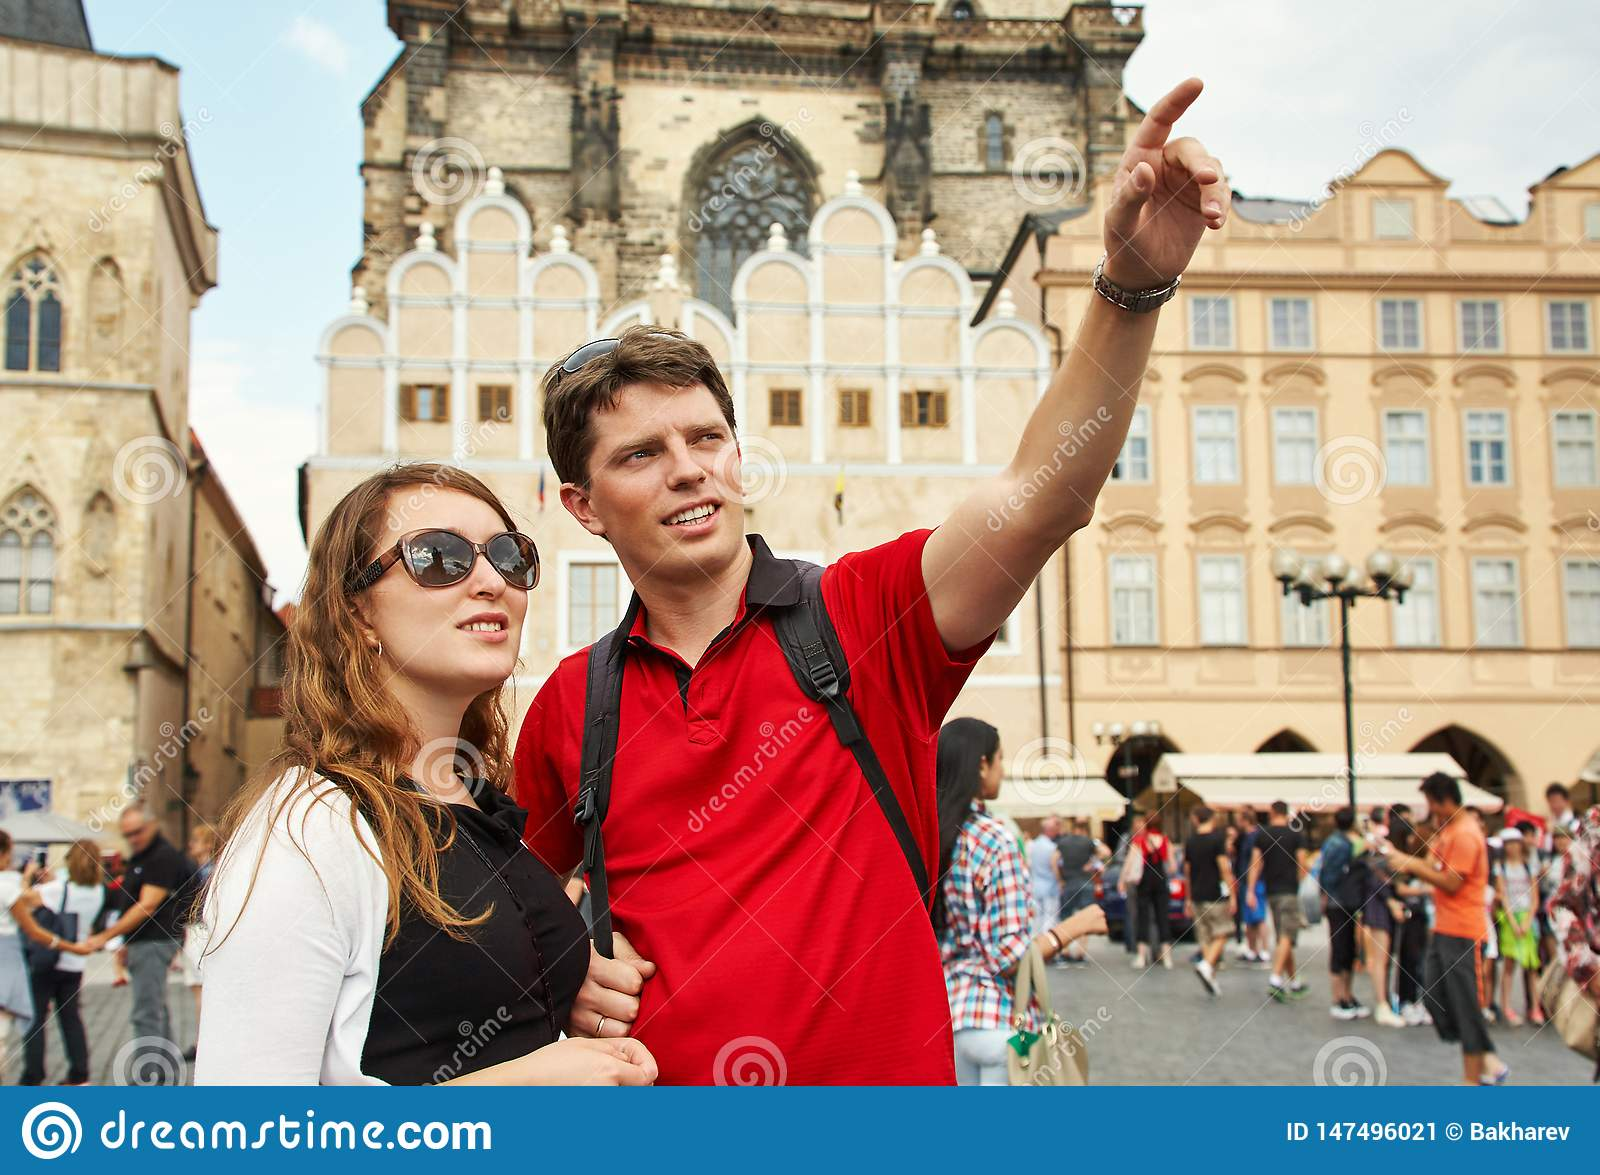 Young couple travelers walking on a street of European city. sightseeing traveler. Prague, Old Town Square.